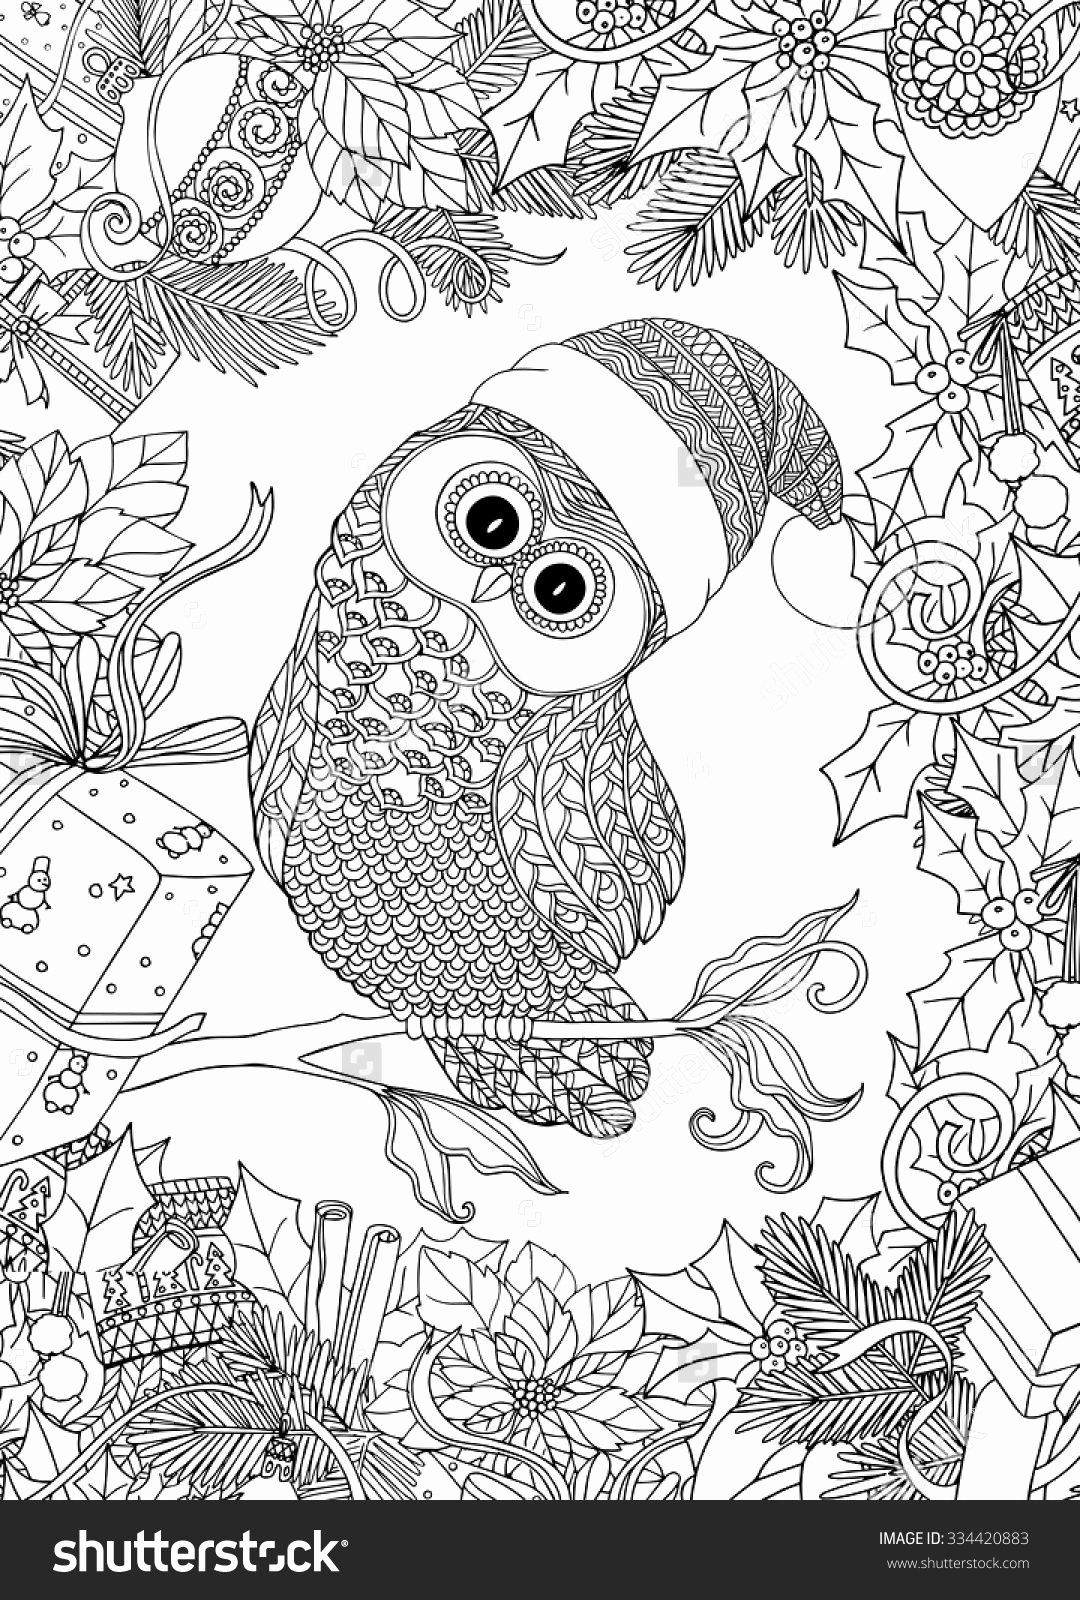 Christmas Coloring Activities For Preschoolers Luxury Collection Christmas Coloring Pages For Owl Coloring Pages Christmas Coloring Pages Animal Coloring Pages